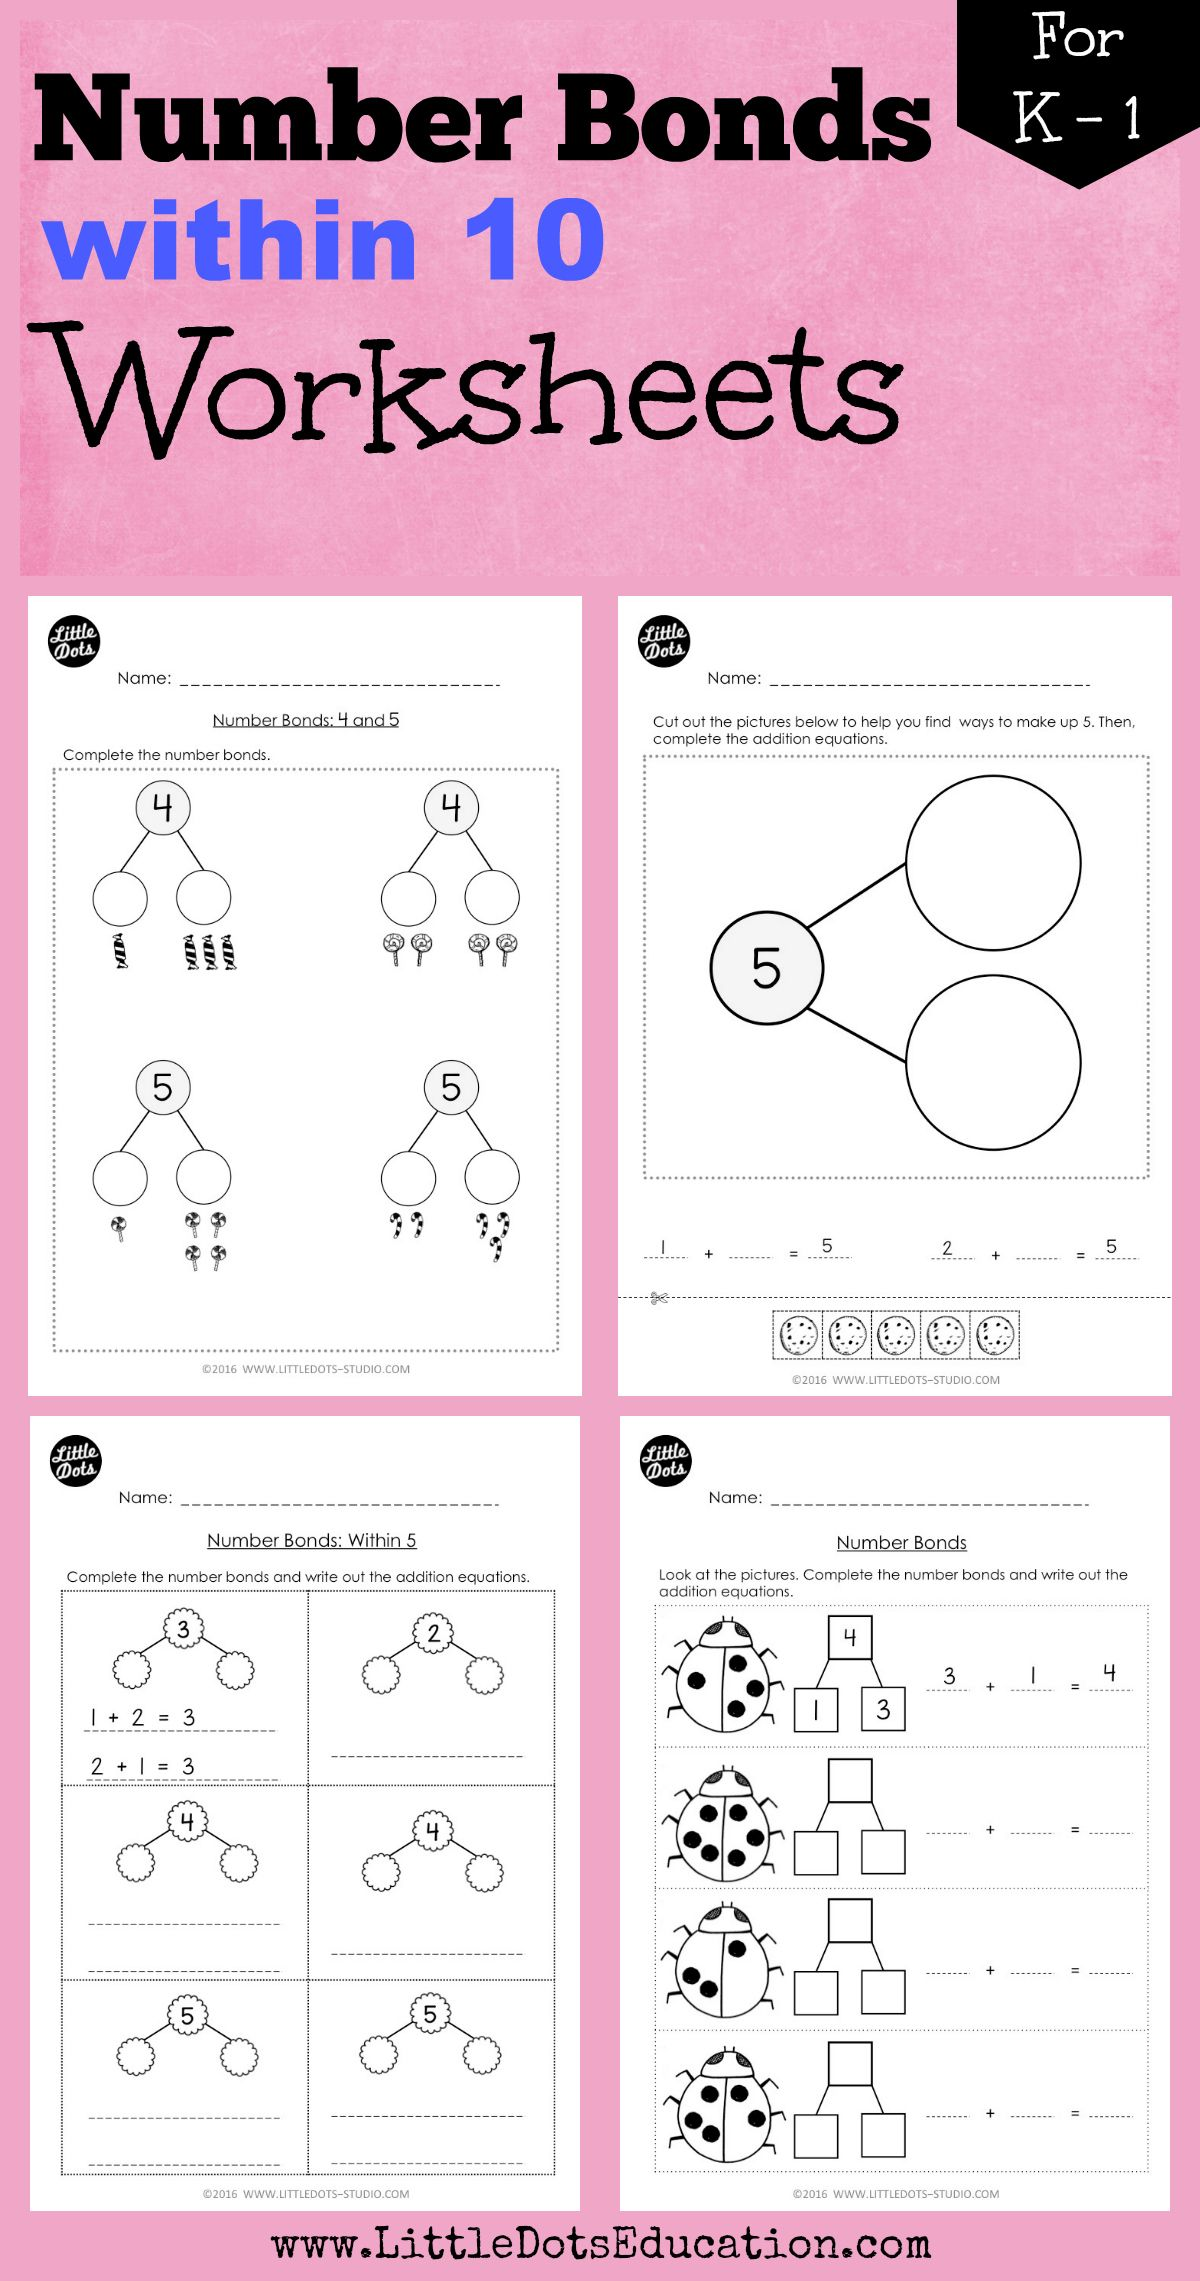 Download Number Bonds Worksheets Within 10 For